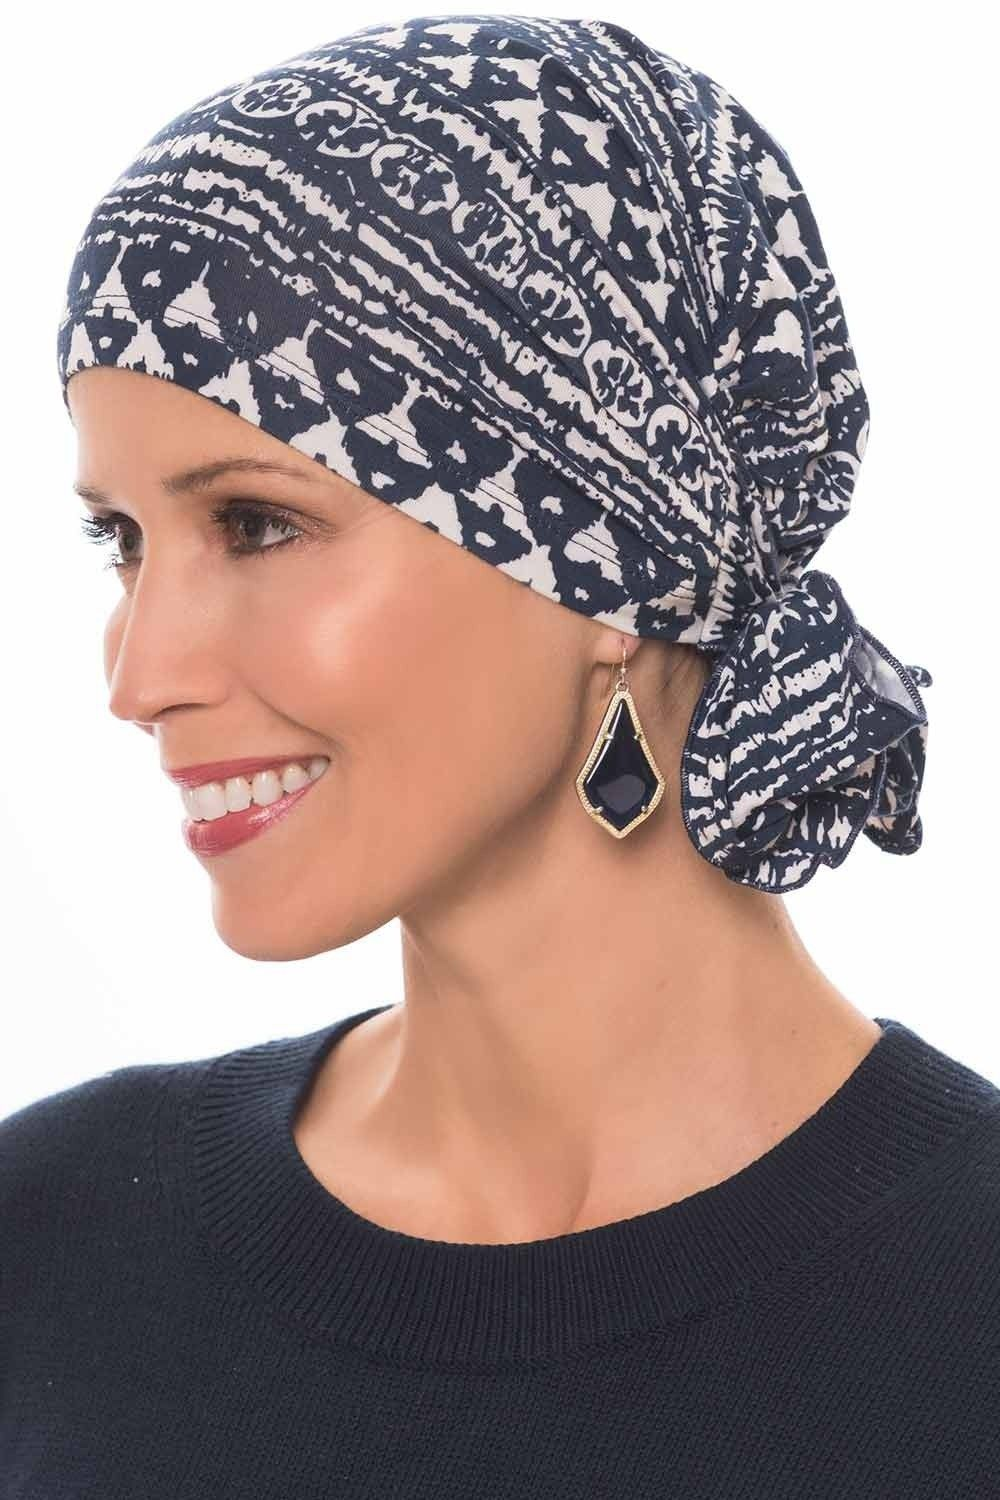 Cardani Easy On Pre Tied Head Scarf in Bamboo | Ready Tie Scarves #tieheadscarves